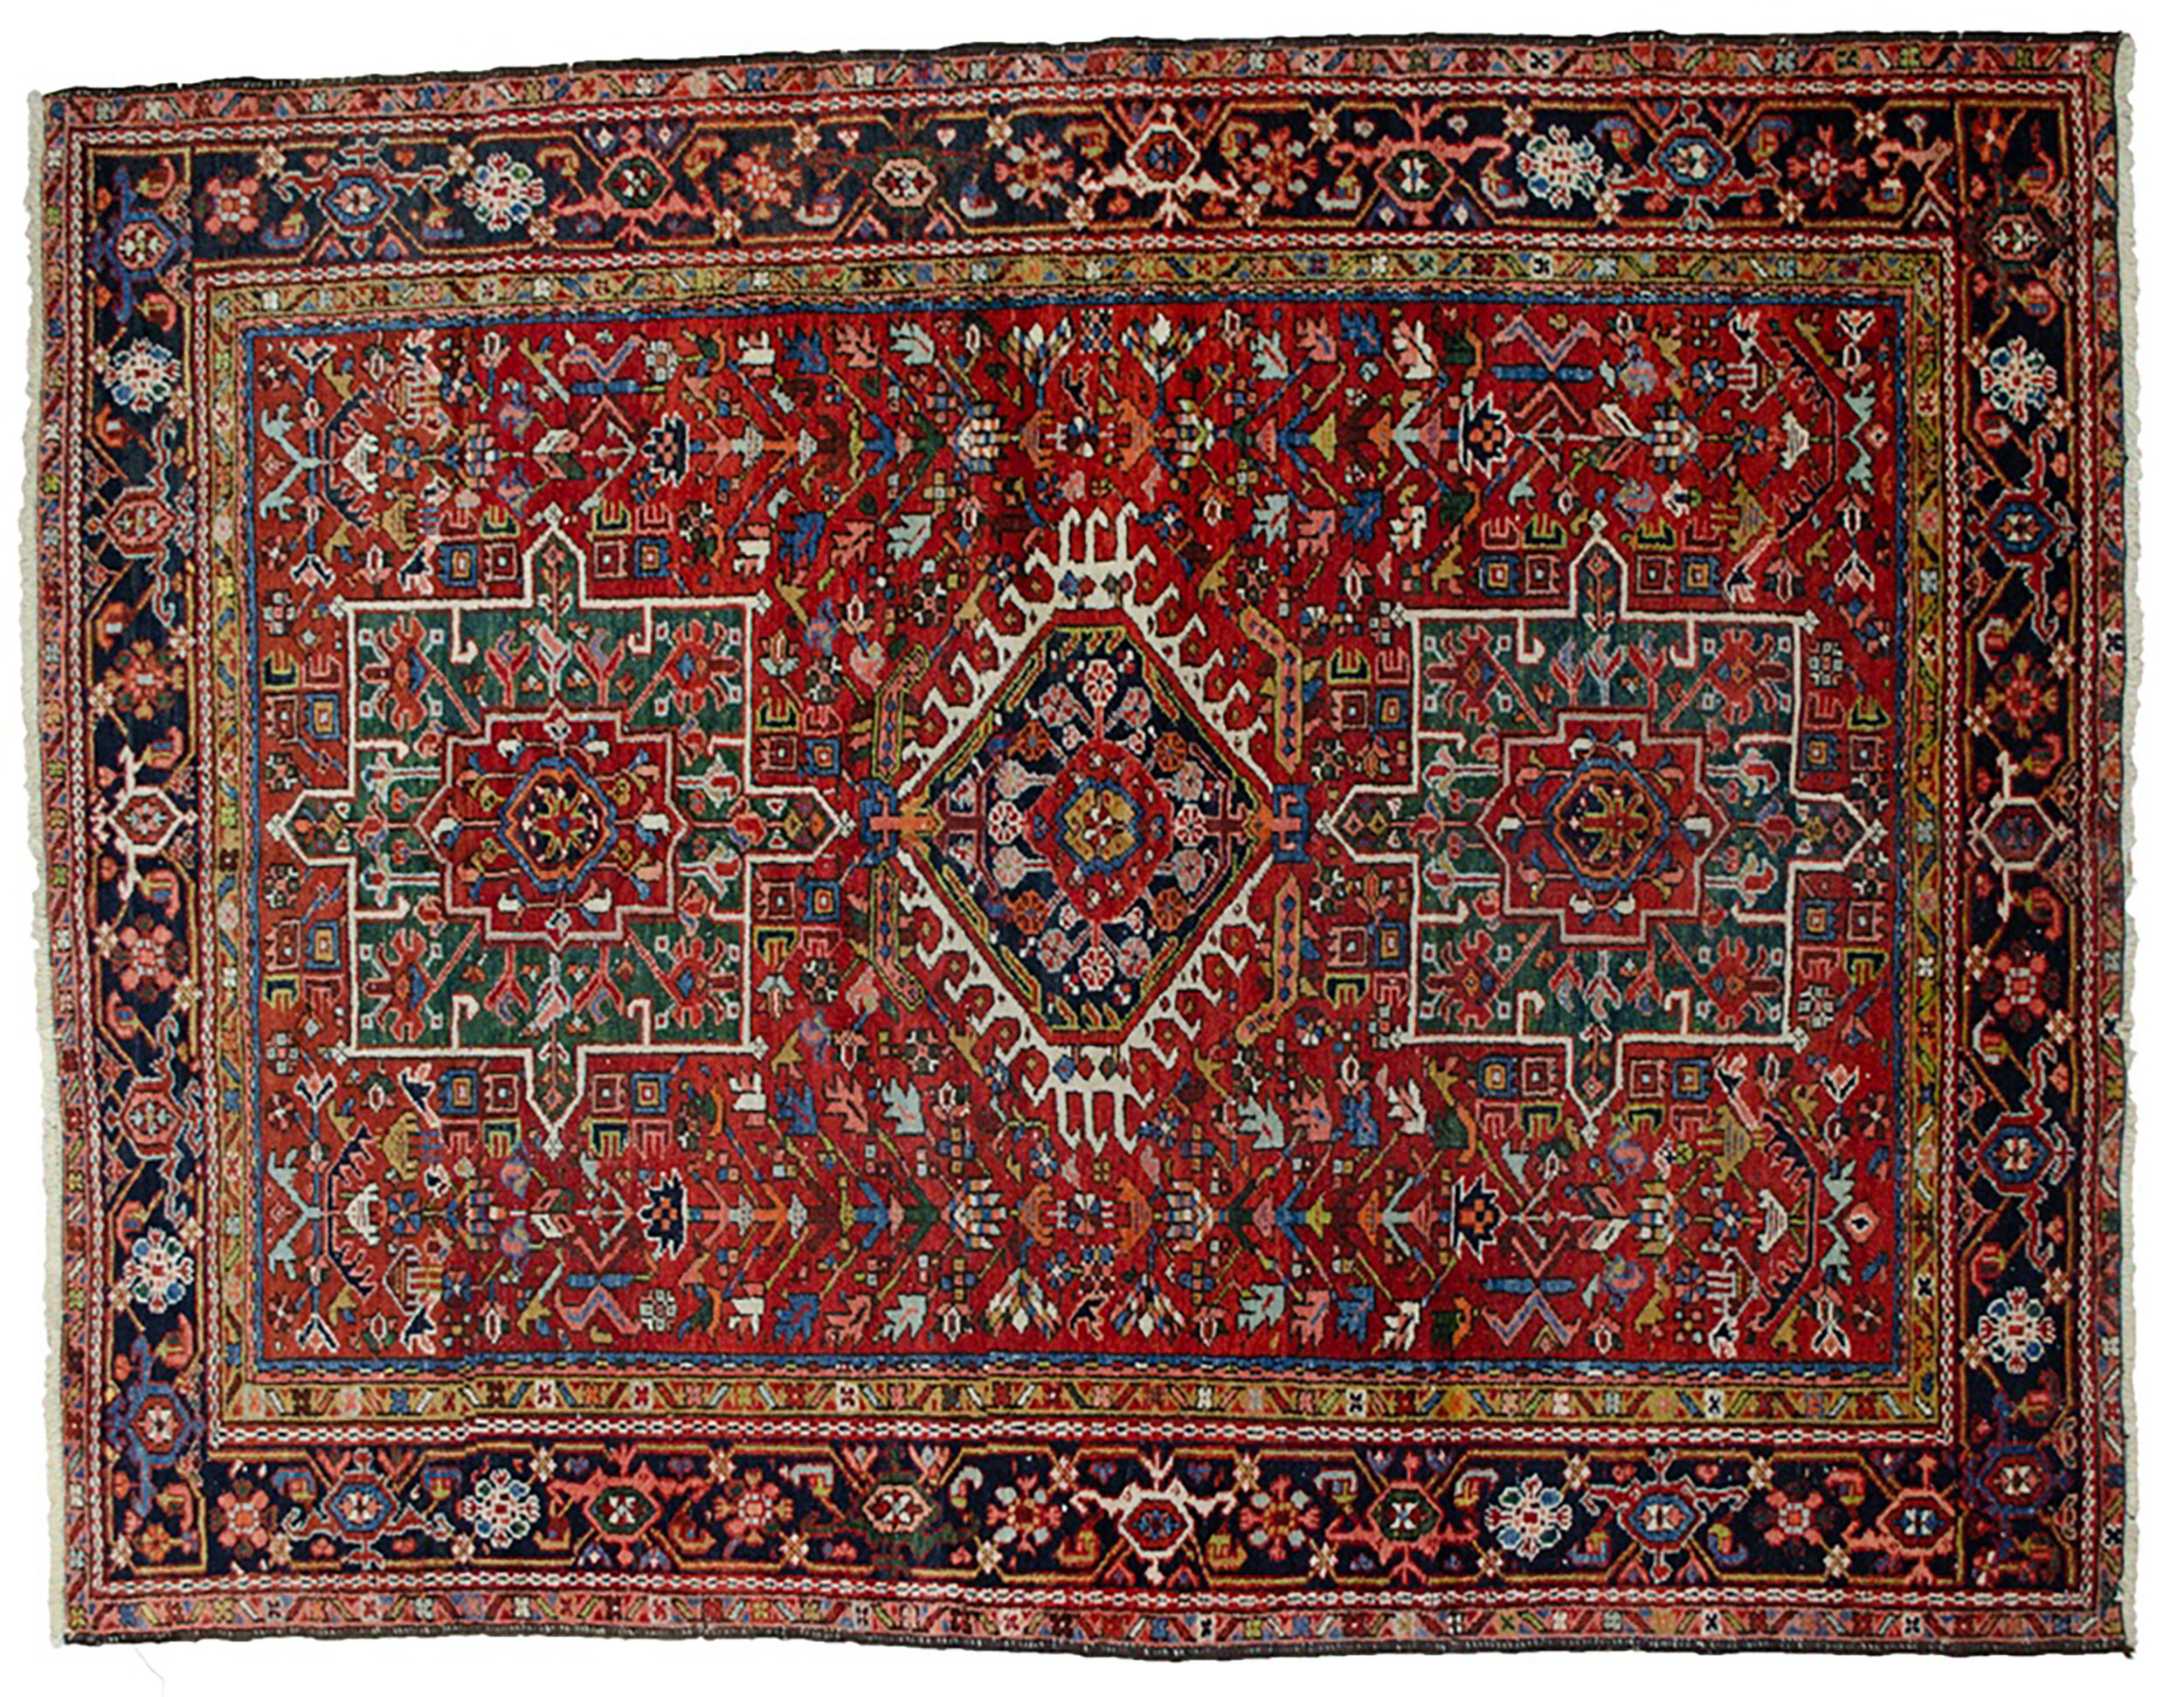 Antique Karaja Rug 185x143cm